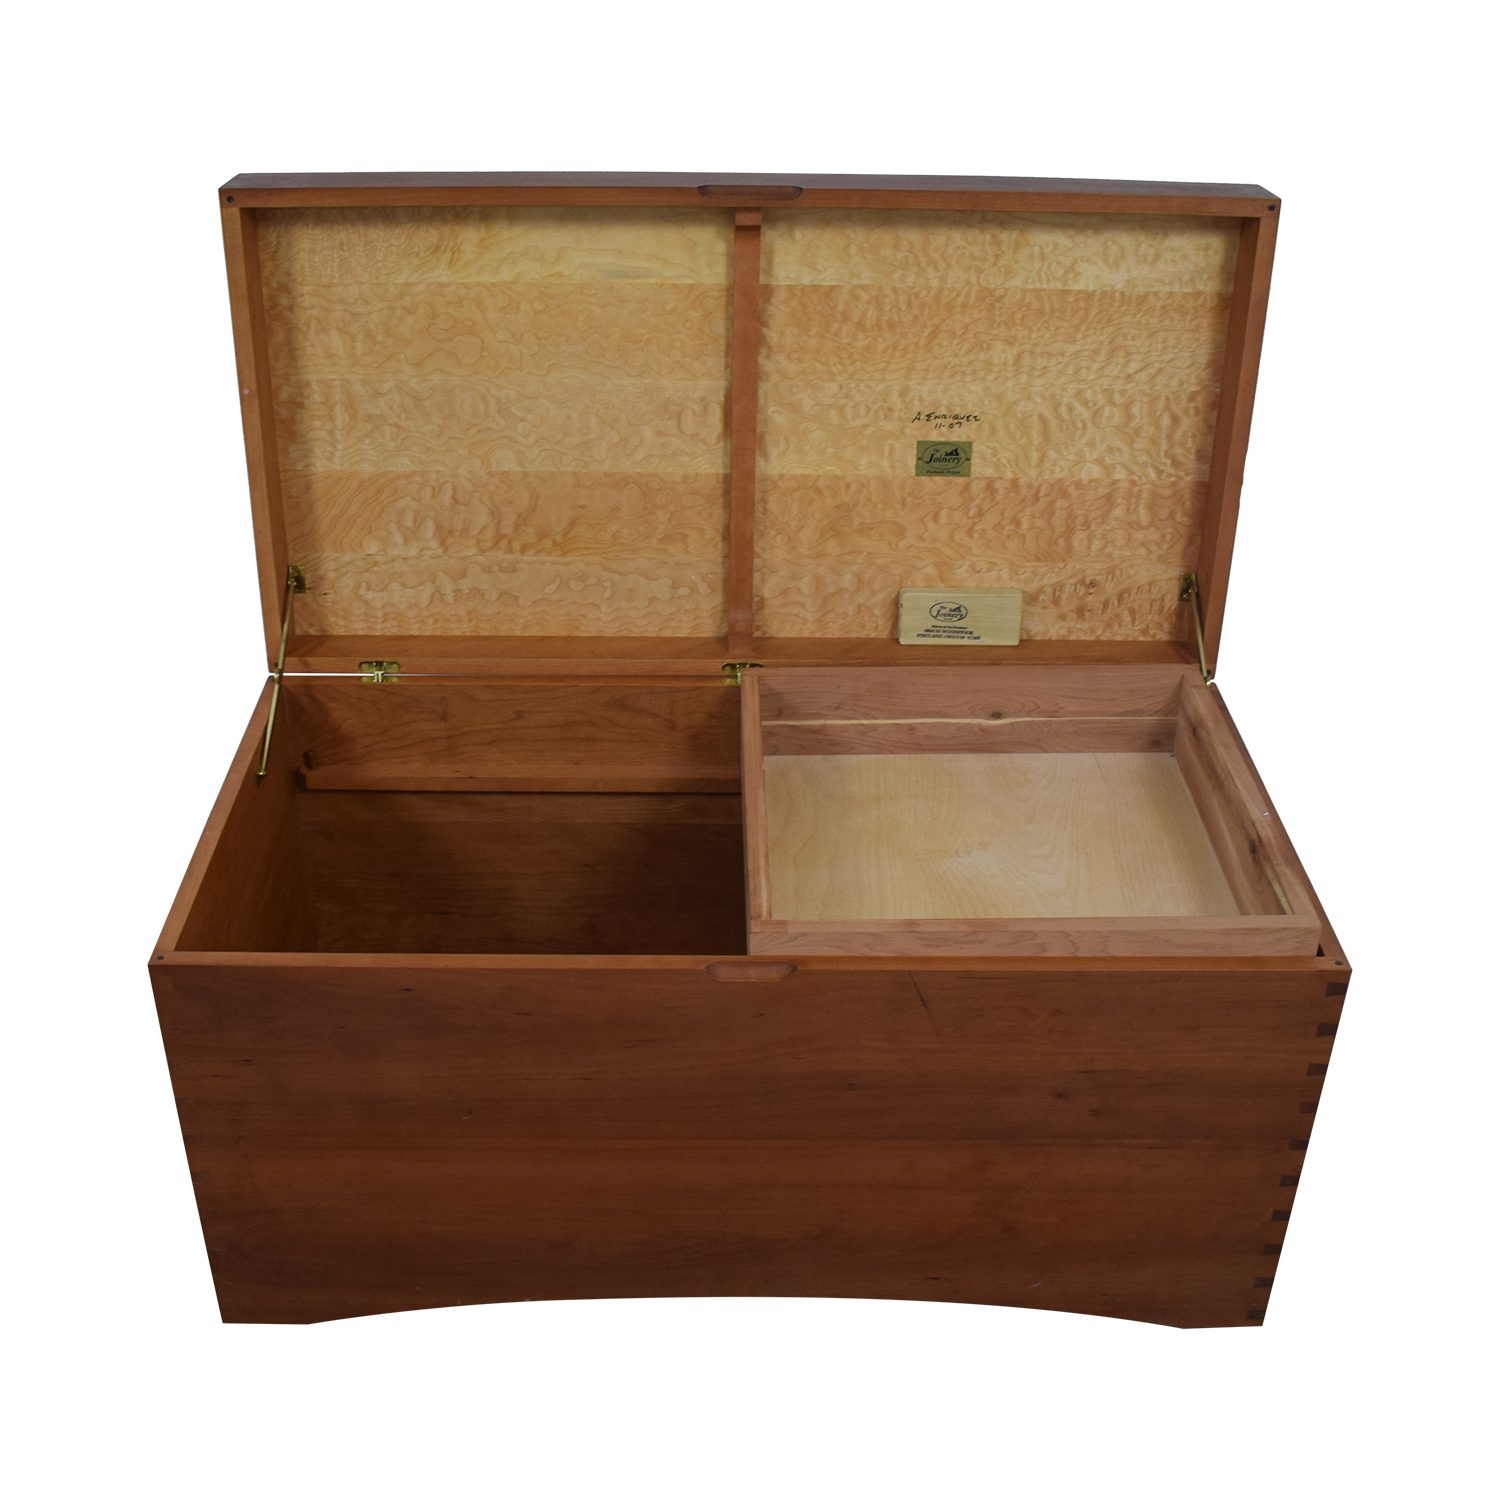 The Joinery The Joinery Custom Wood Hope Chest Trunk nyc